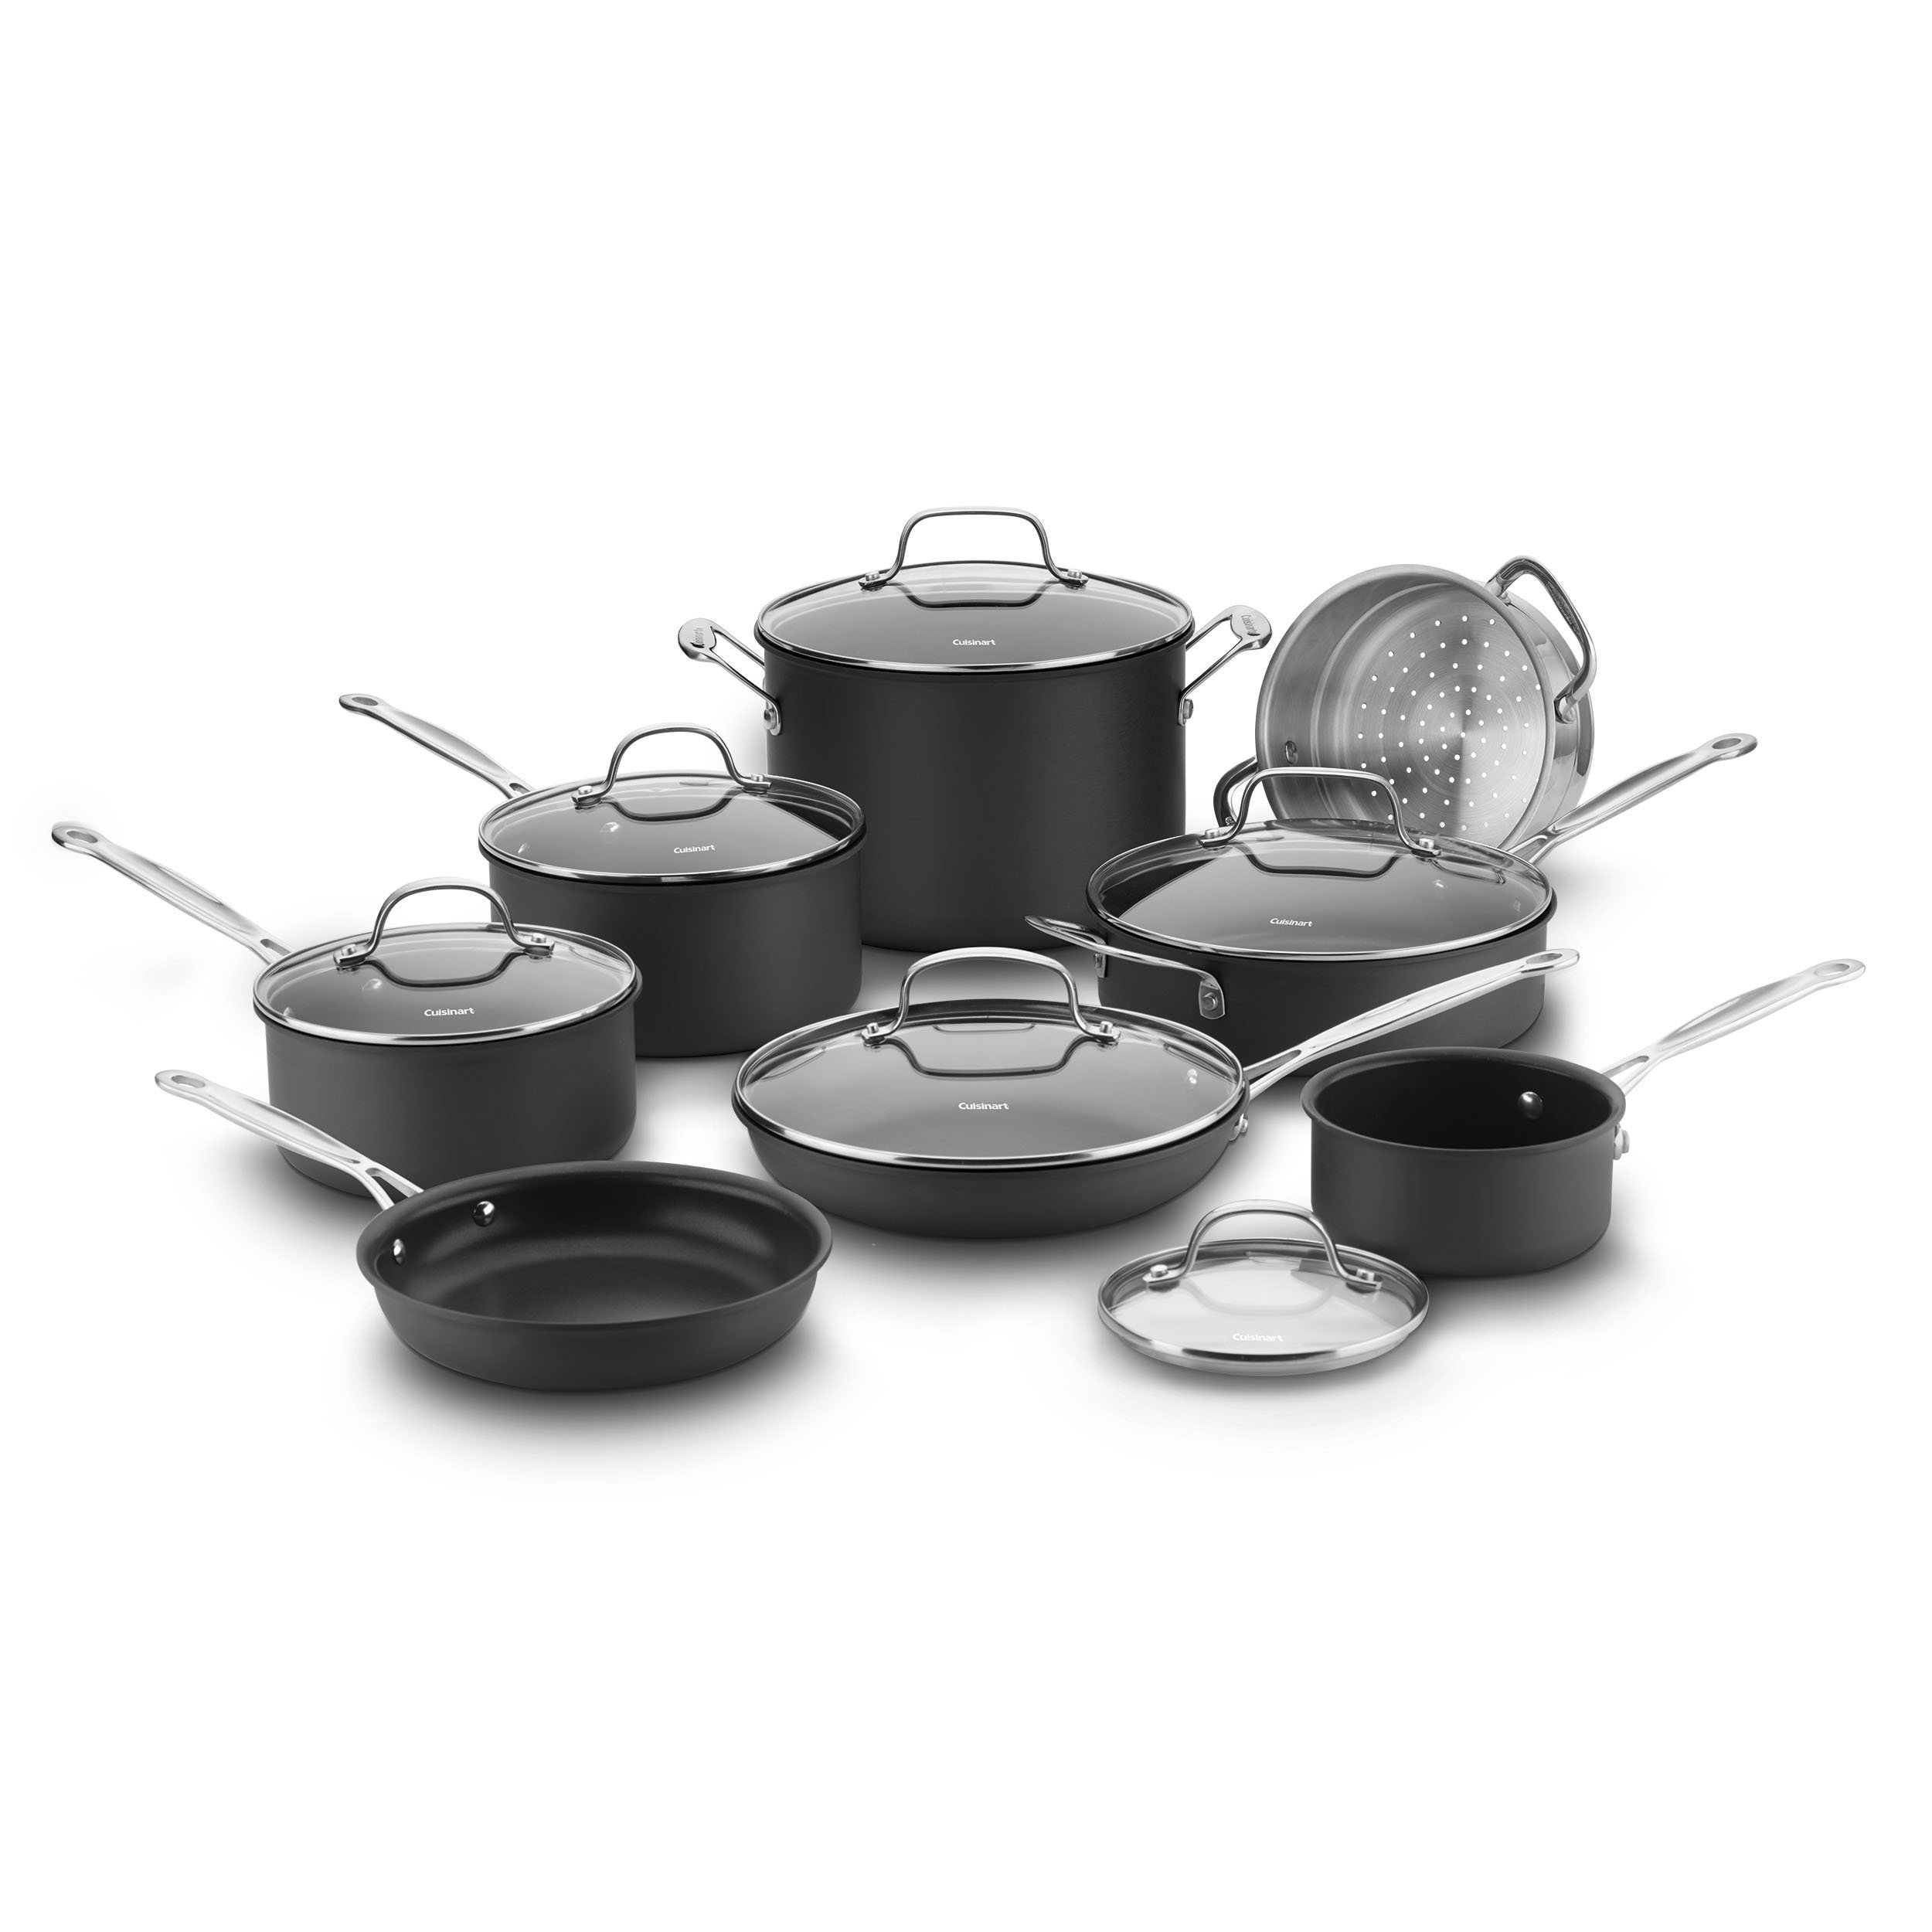 Cuisinart 14 Piece Chef's Classic Non-Stick Hard Anodized Cookware Set, Gray